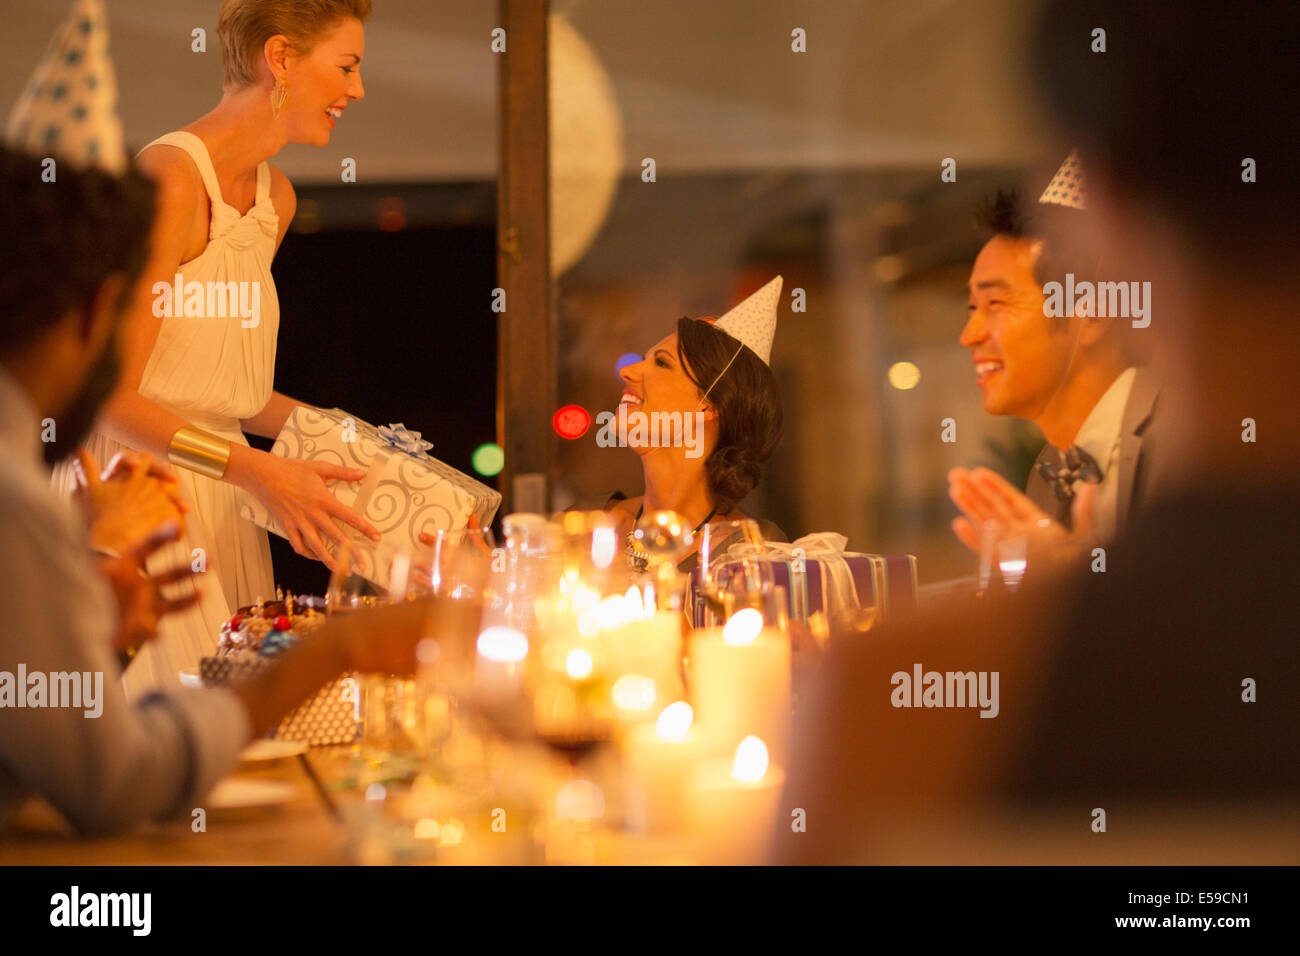 Woman giving friend present at birthday party - Stock Image